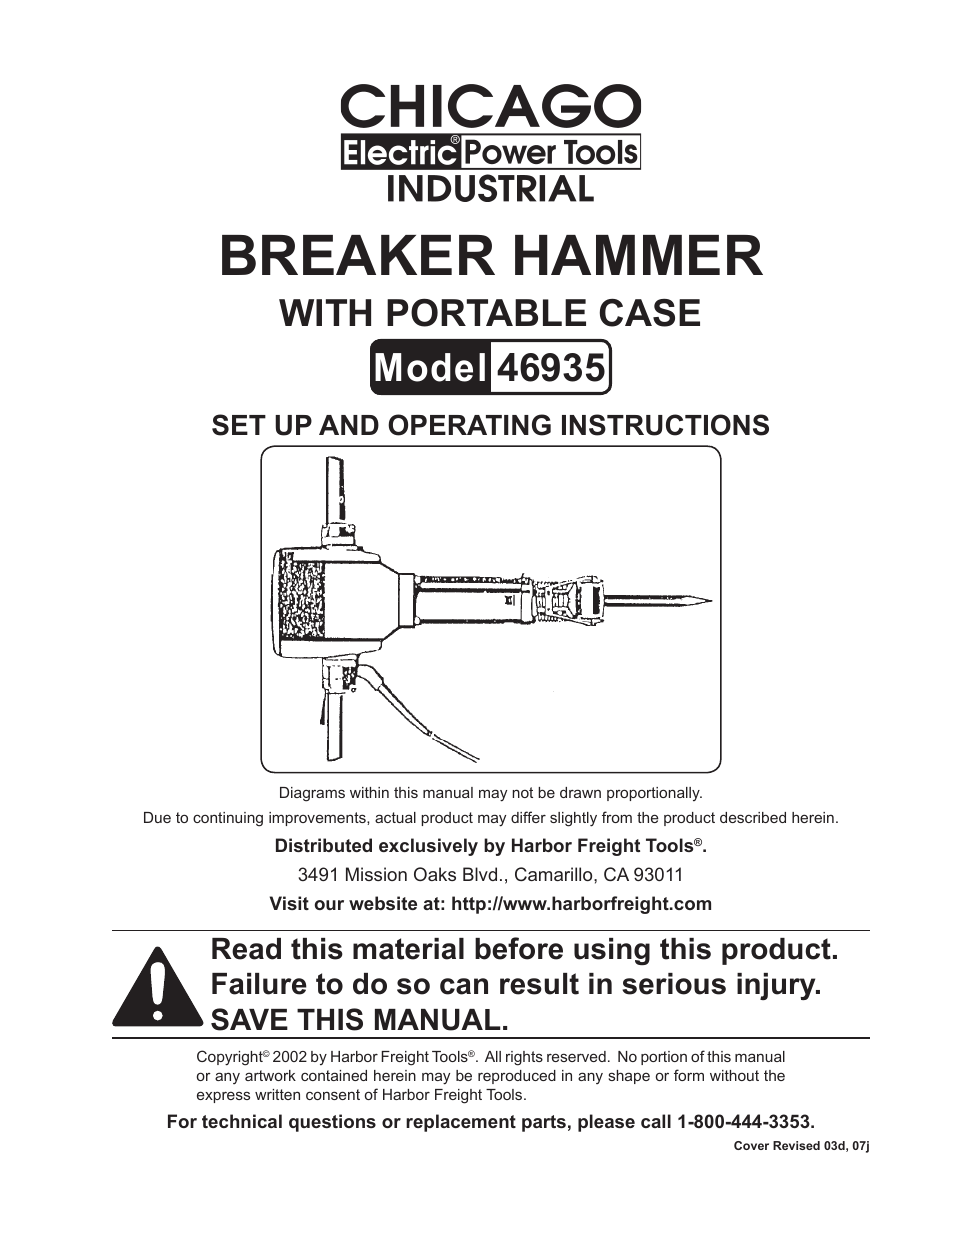 hight resolution of harbor freight tools chicago electric breaker hammer with portable case 46935 user manual 10 pages